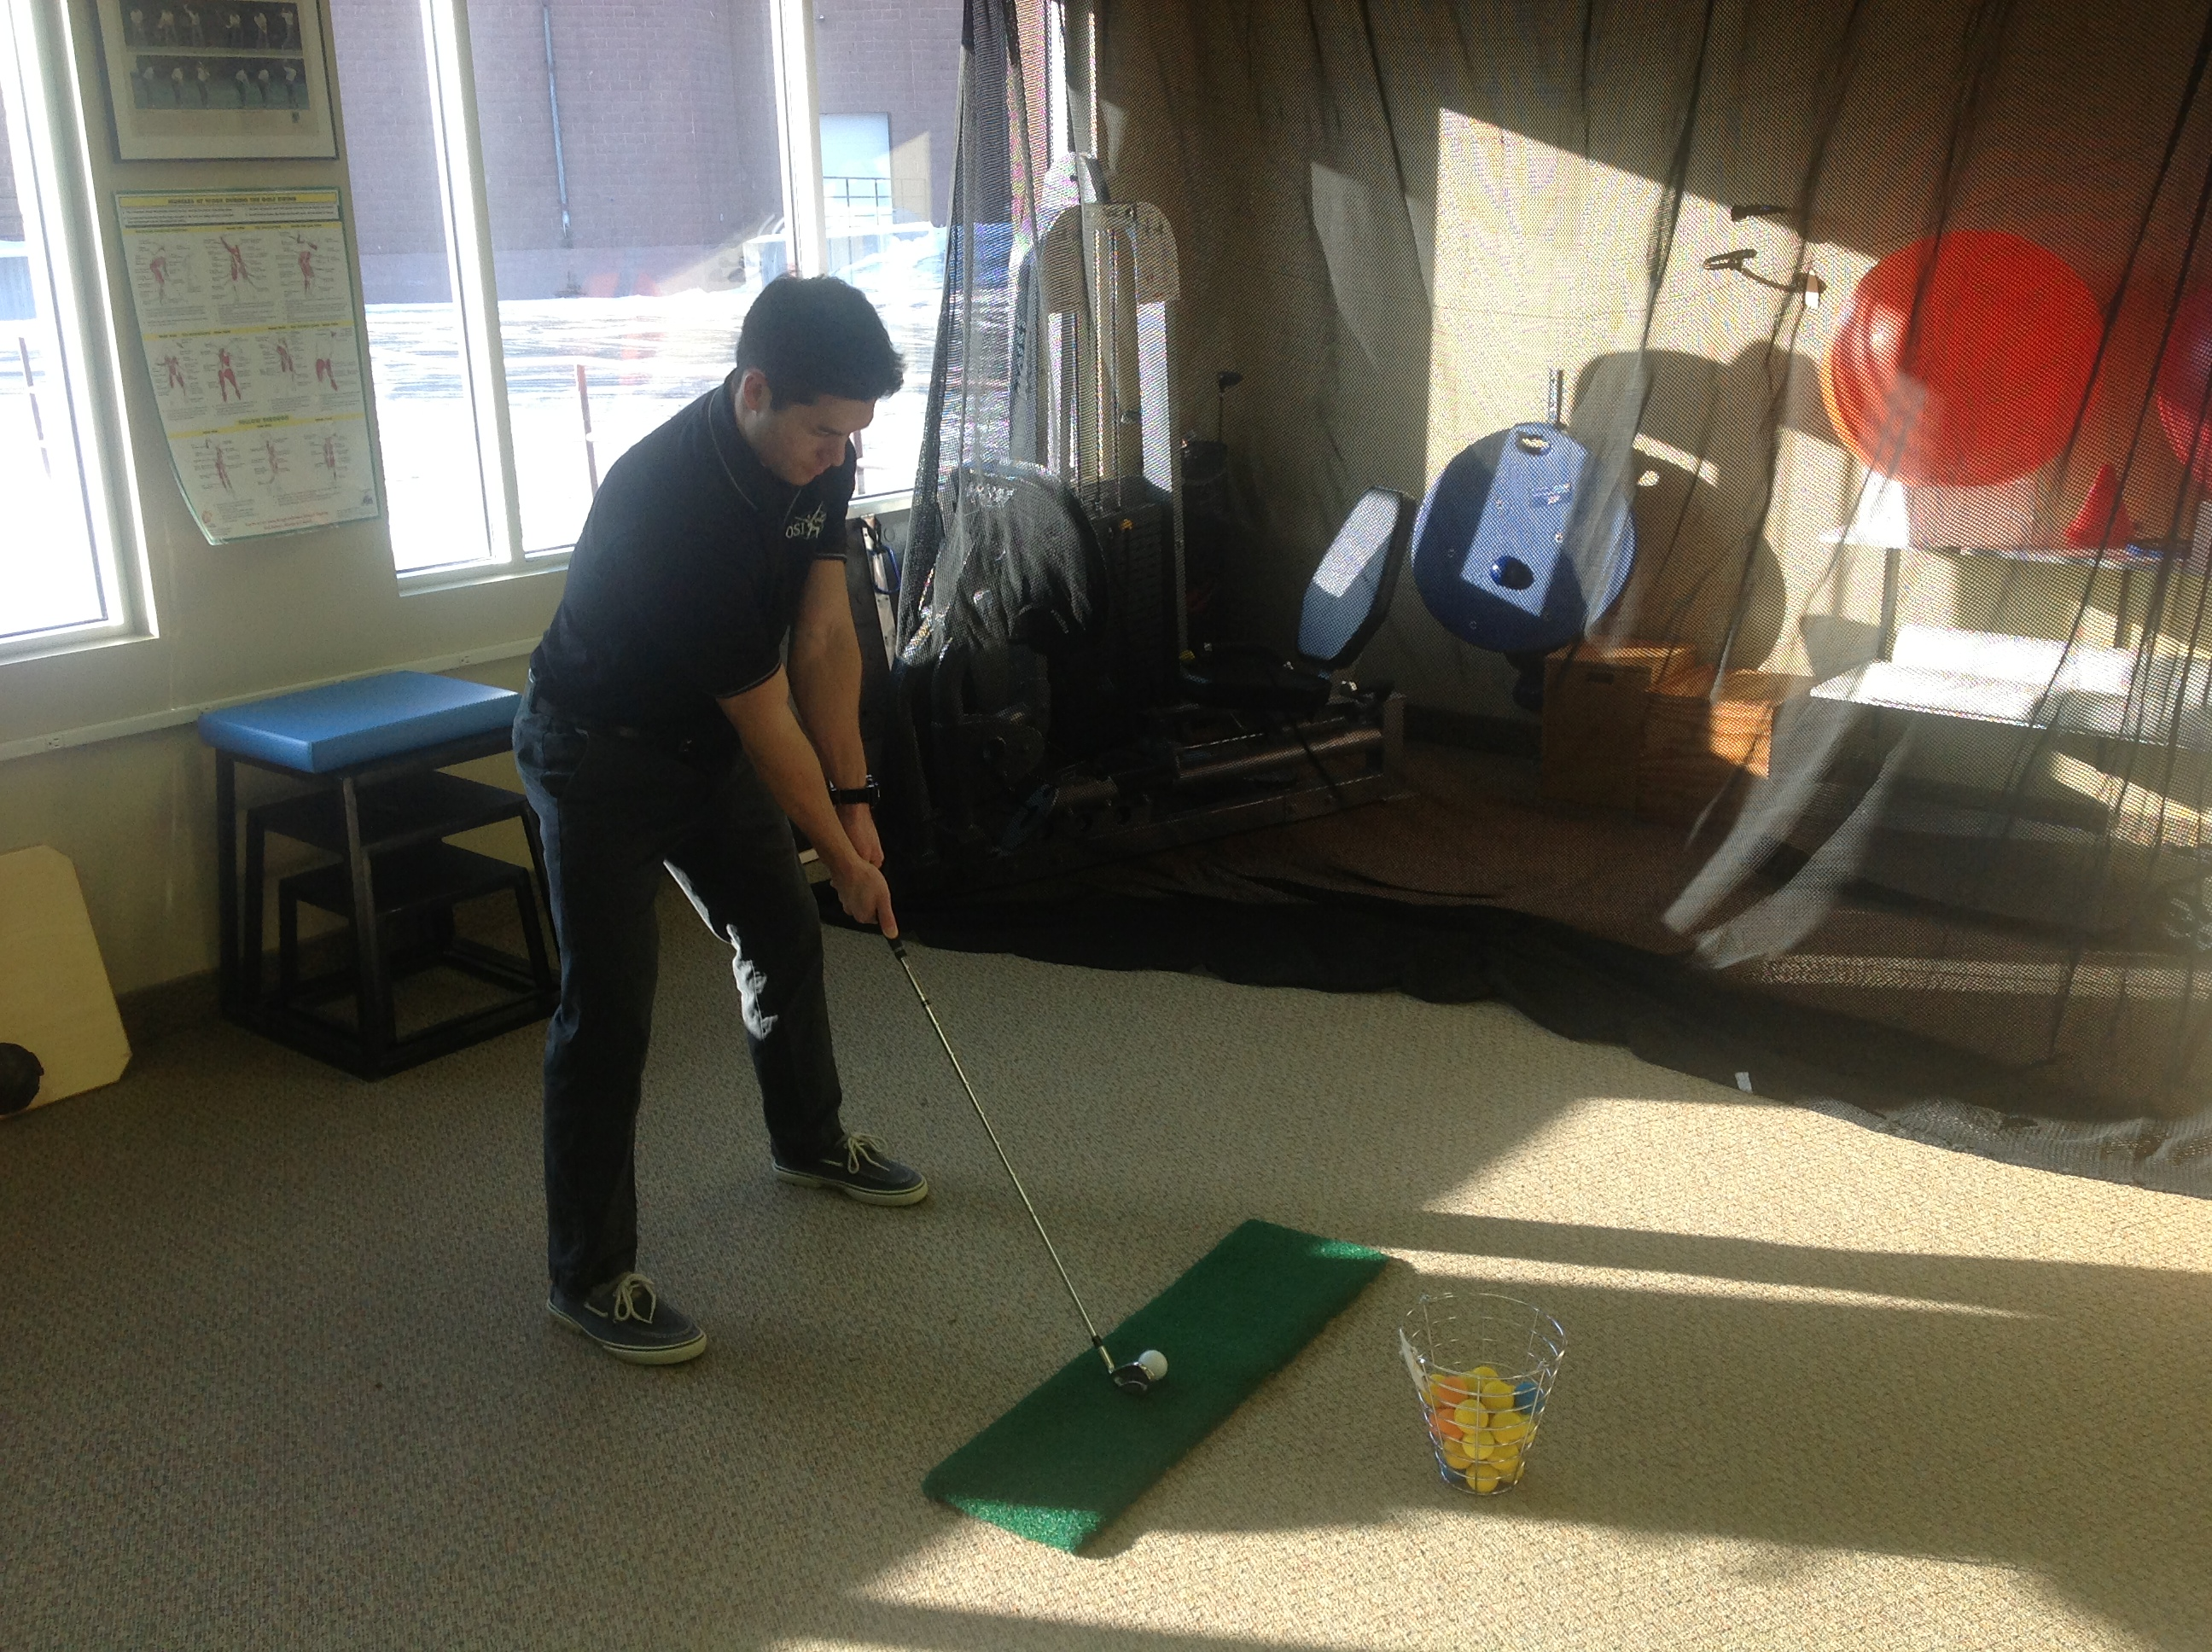 Video analysis of golf swing mechanics